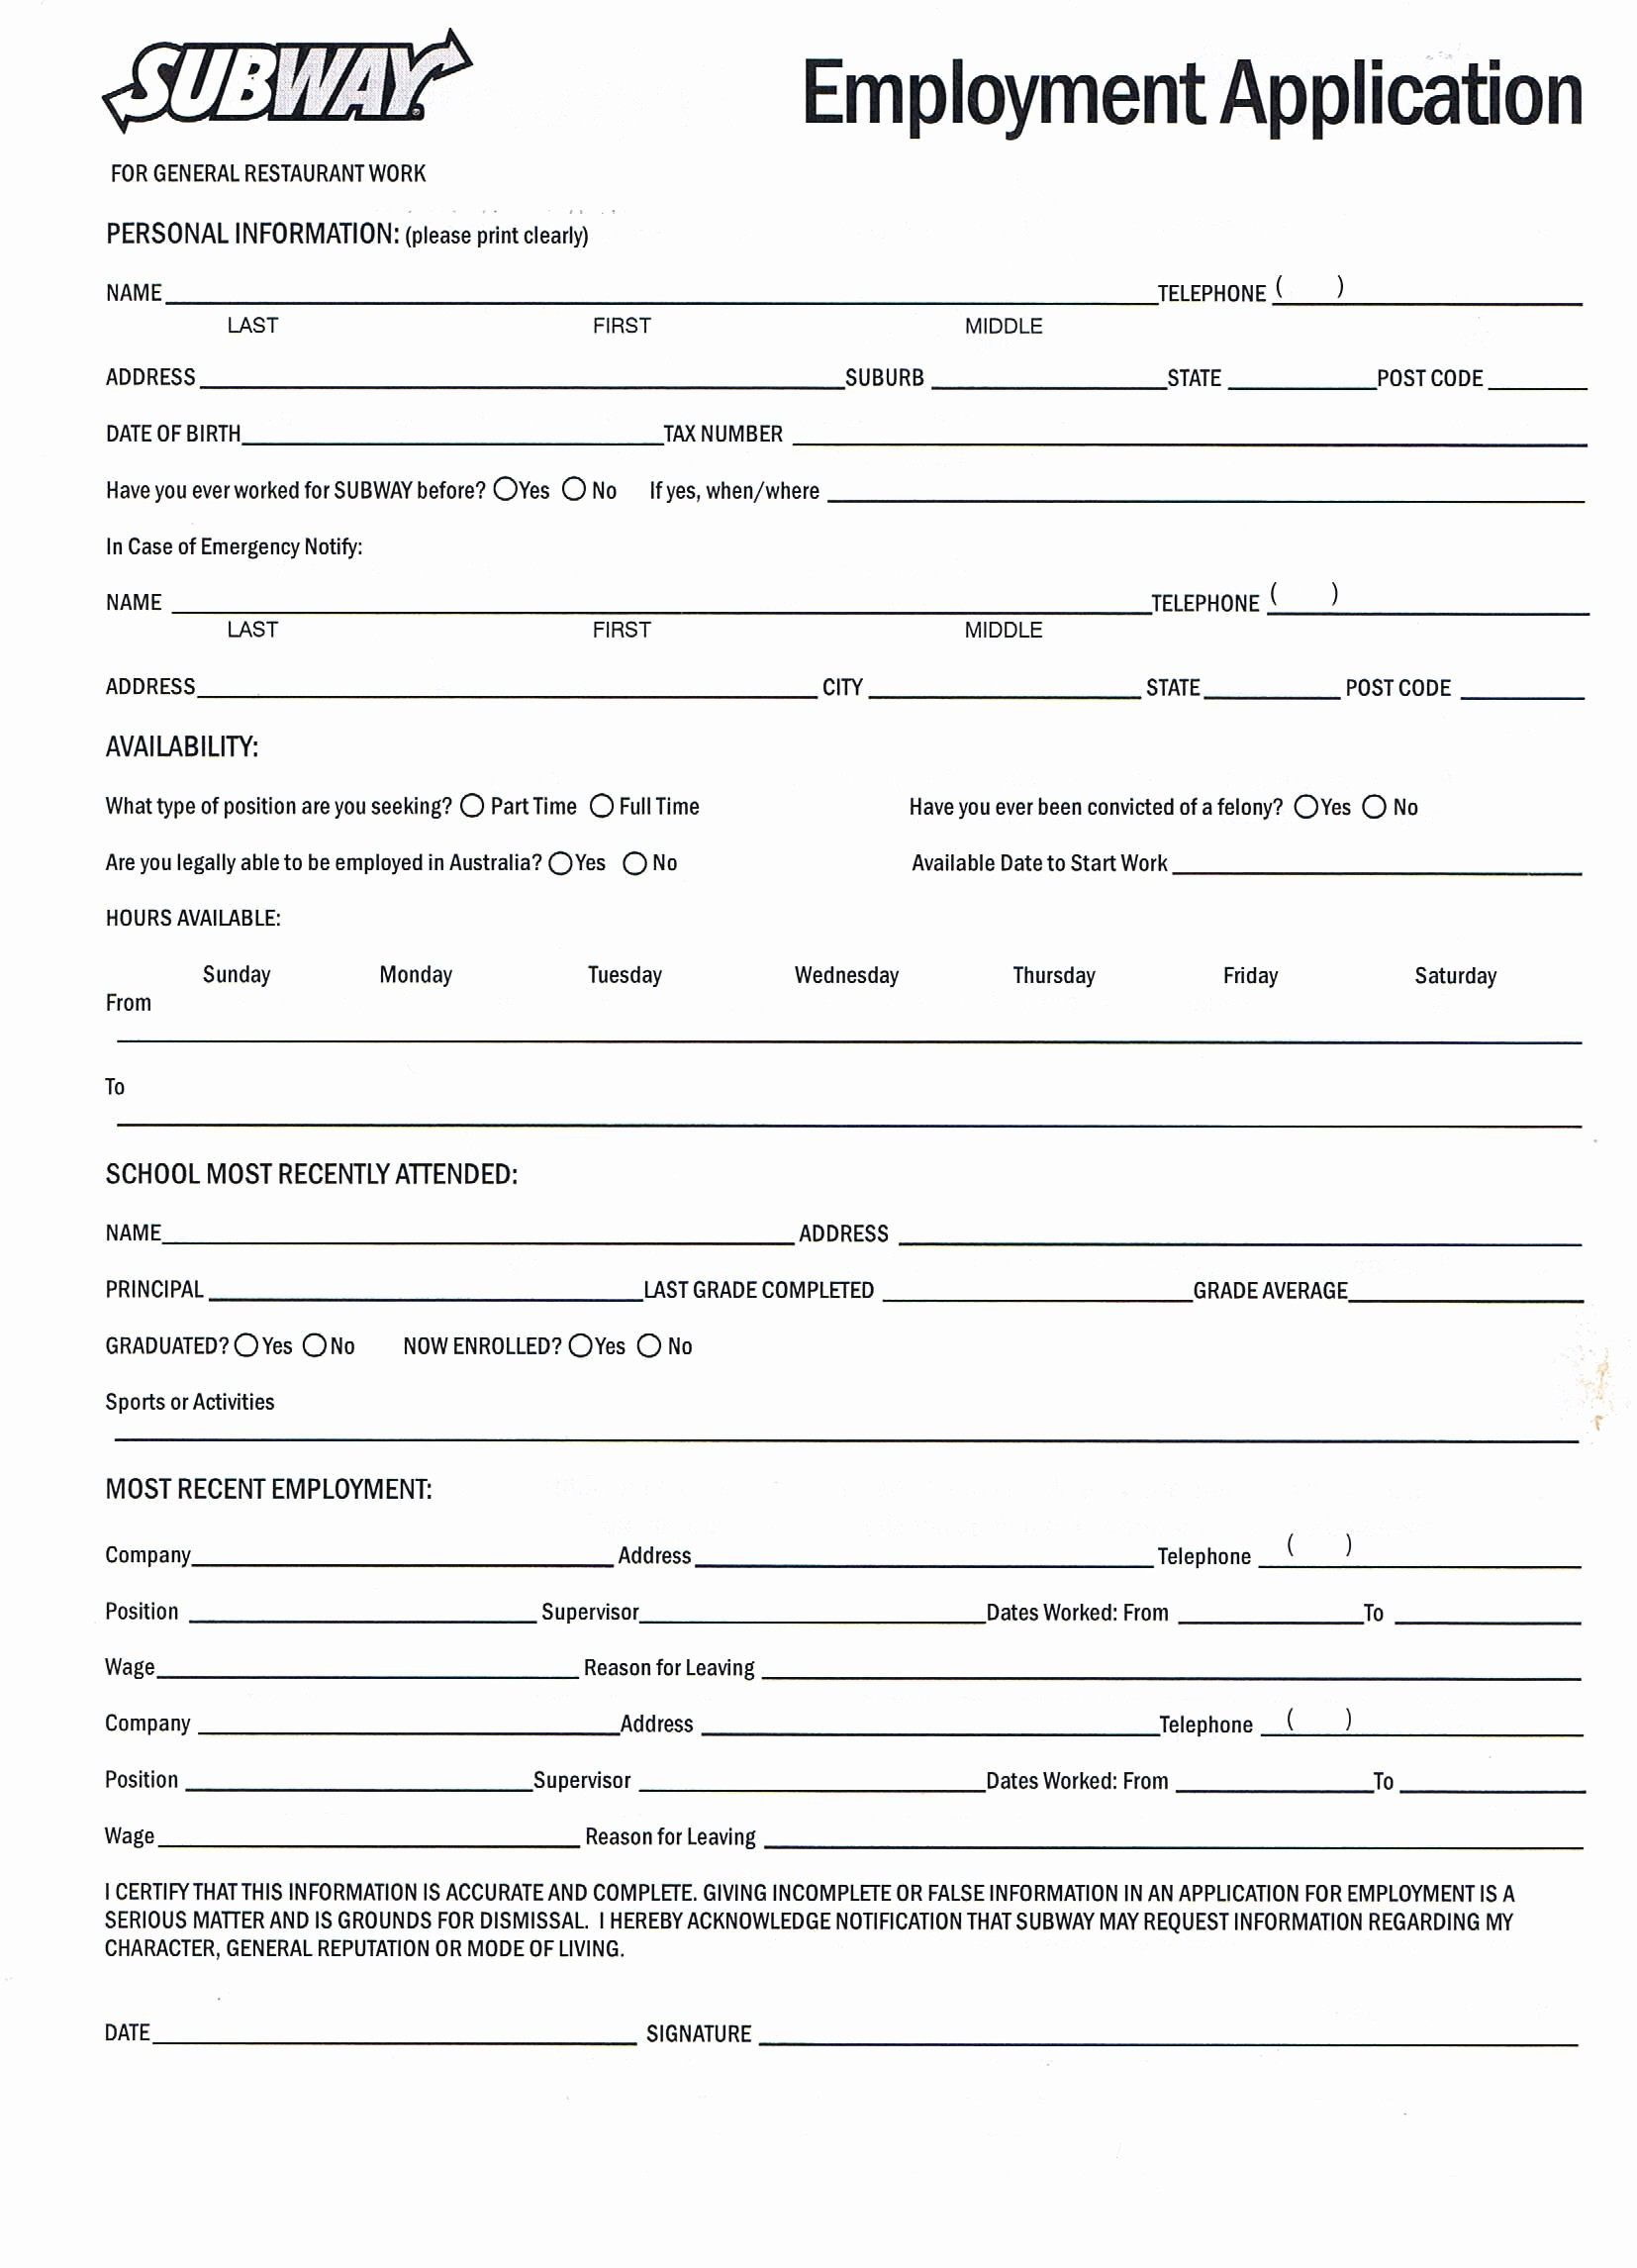 General Application for Employment Printable Best Of Printable Job Application forms Online forms Download and